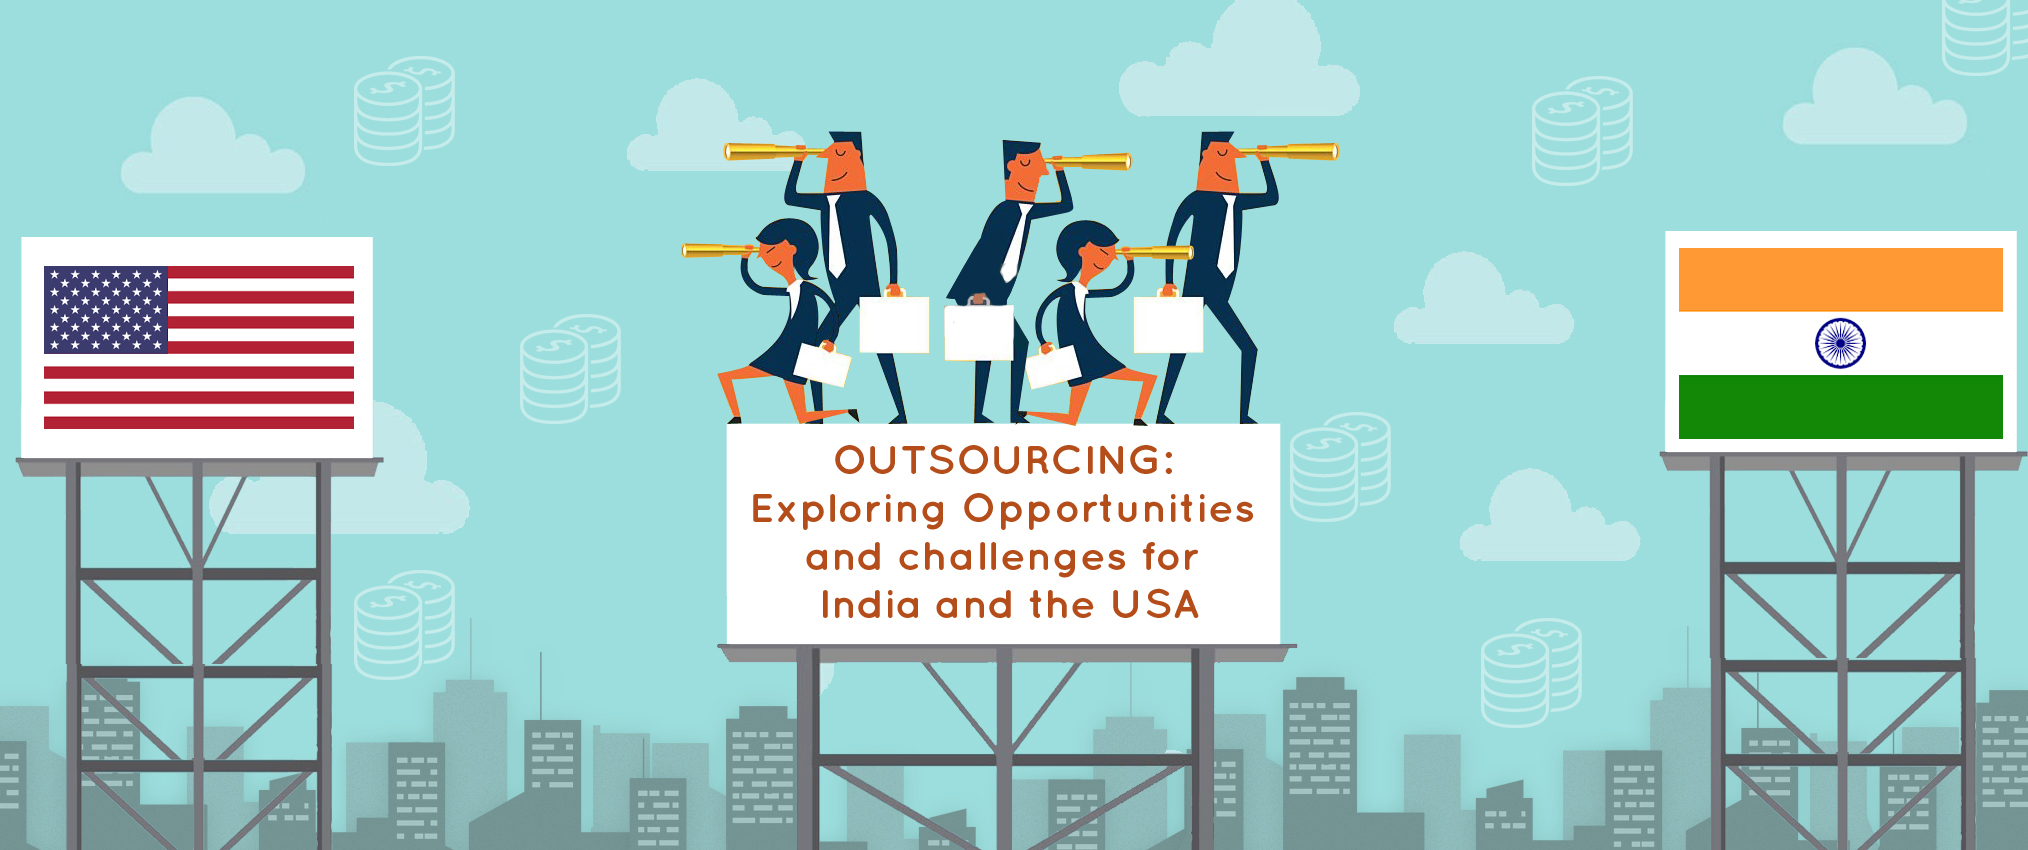 challenges and opportunities in outsourcing to Software development outsourcing: challenges and opportunities in nigeria cristina casado-lumbreras, universidad internacional de la rioja, logroño, spain ricardo colomo-palacios,østfold university college,.